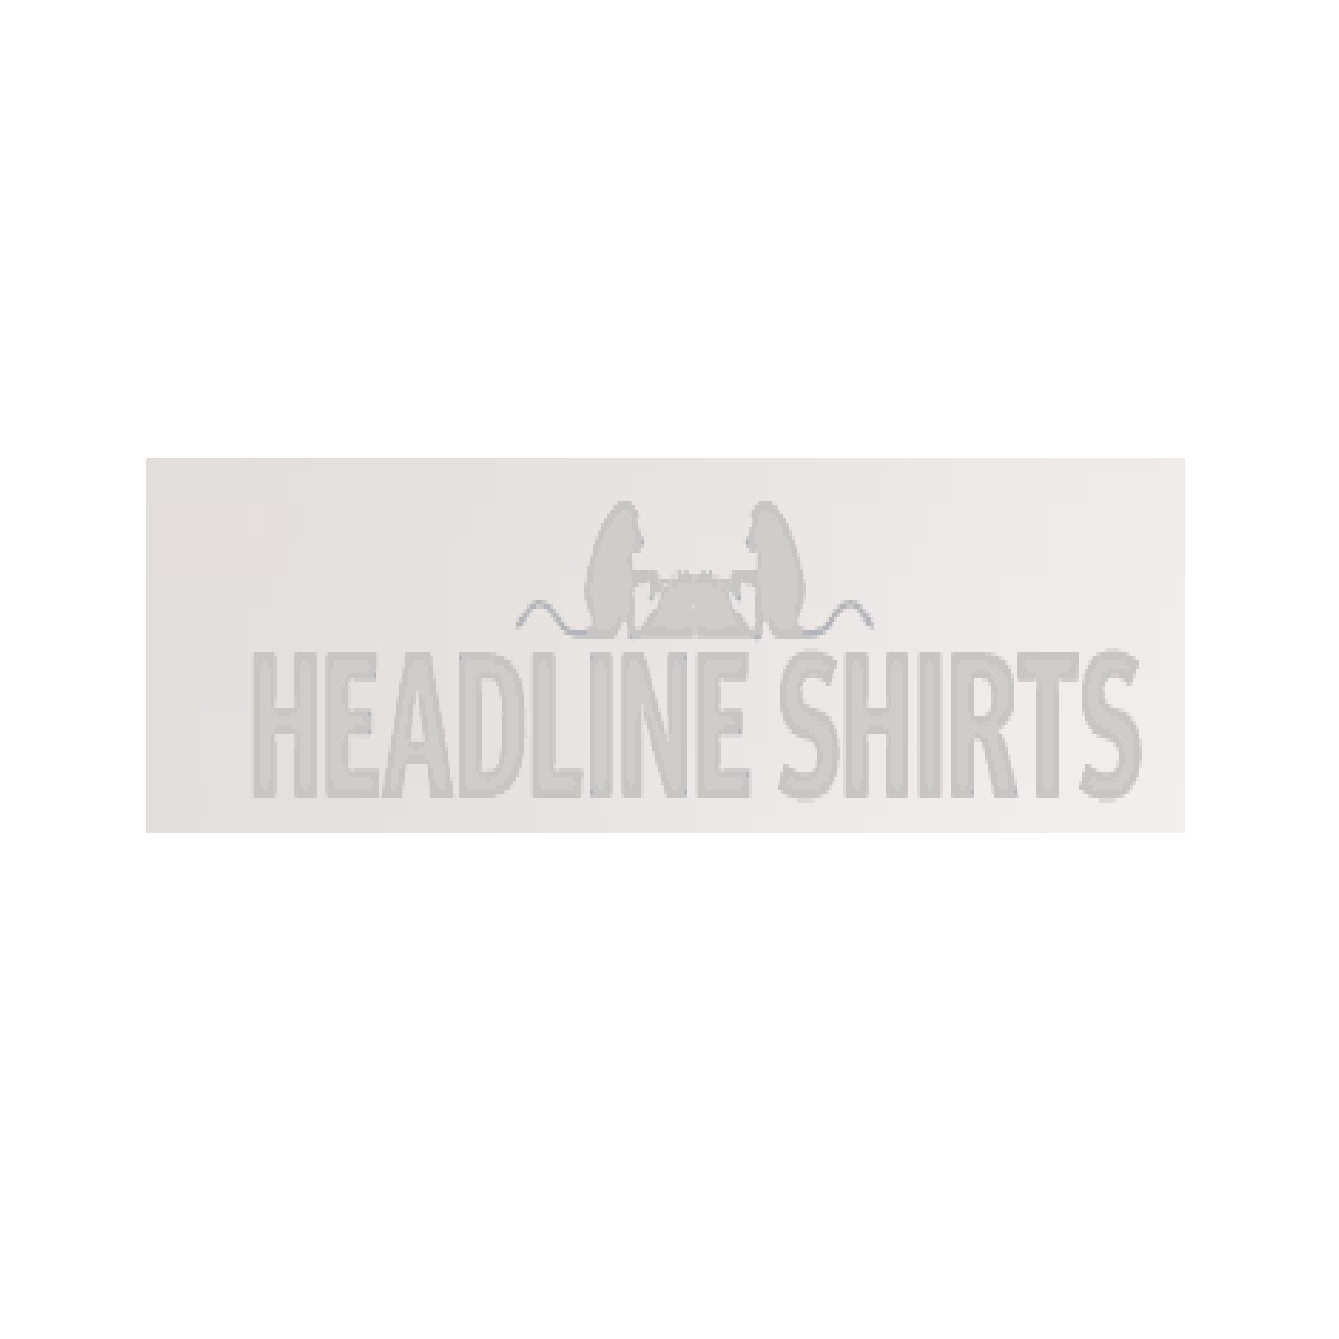 Headlineshirts coupons and codes